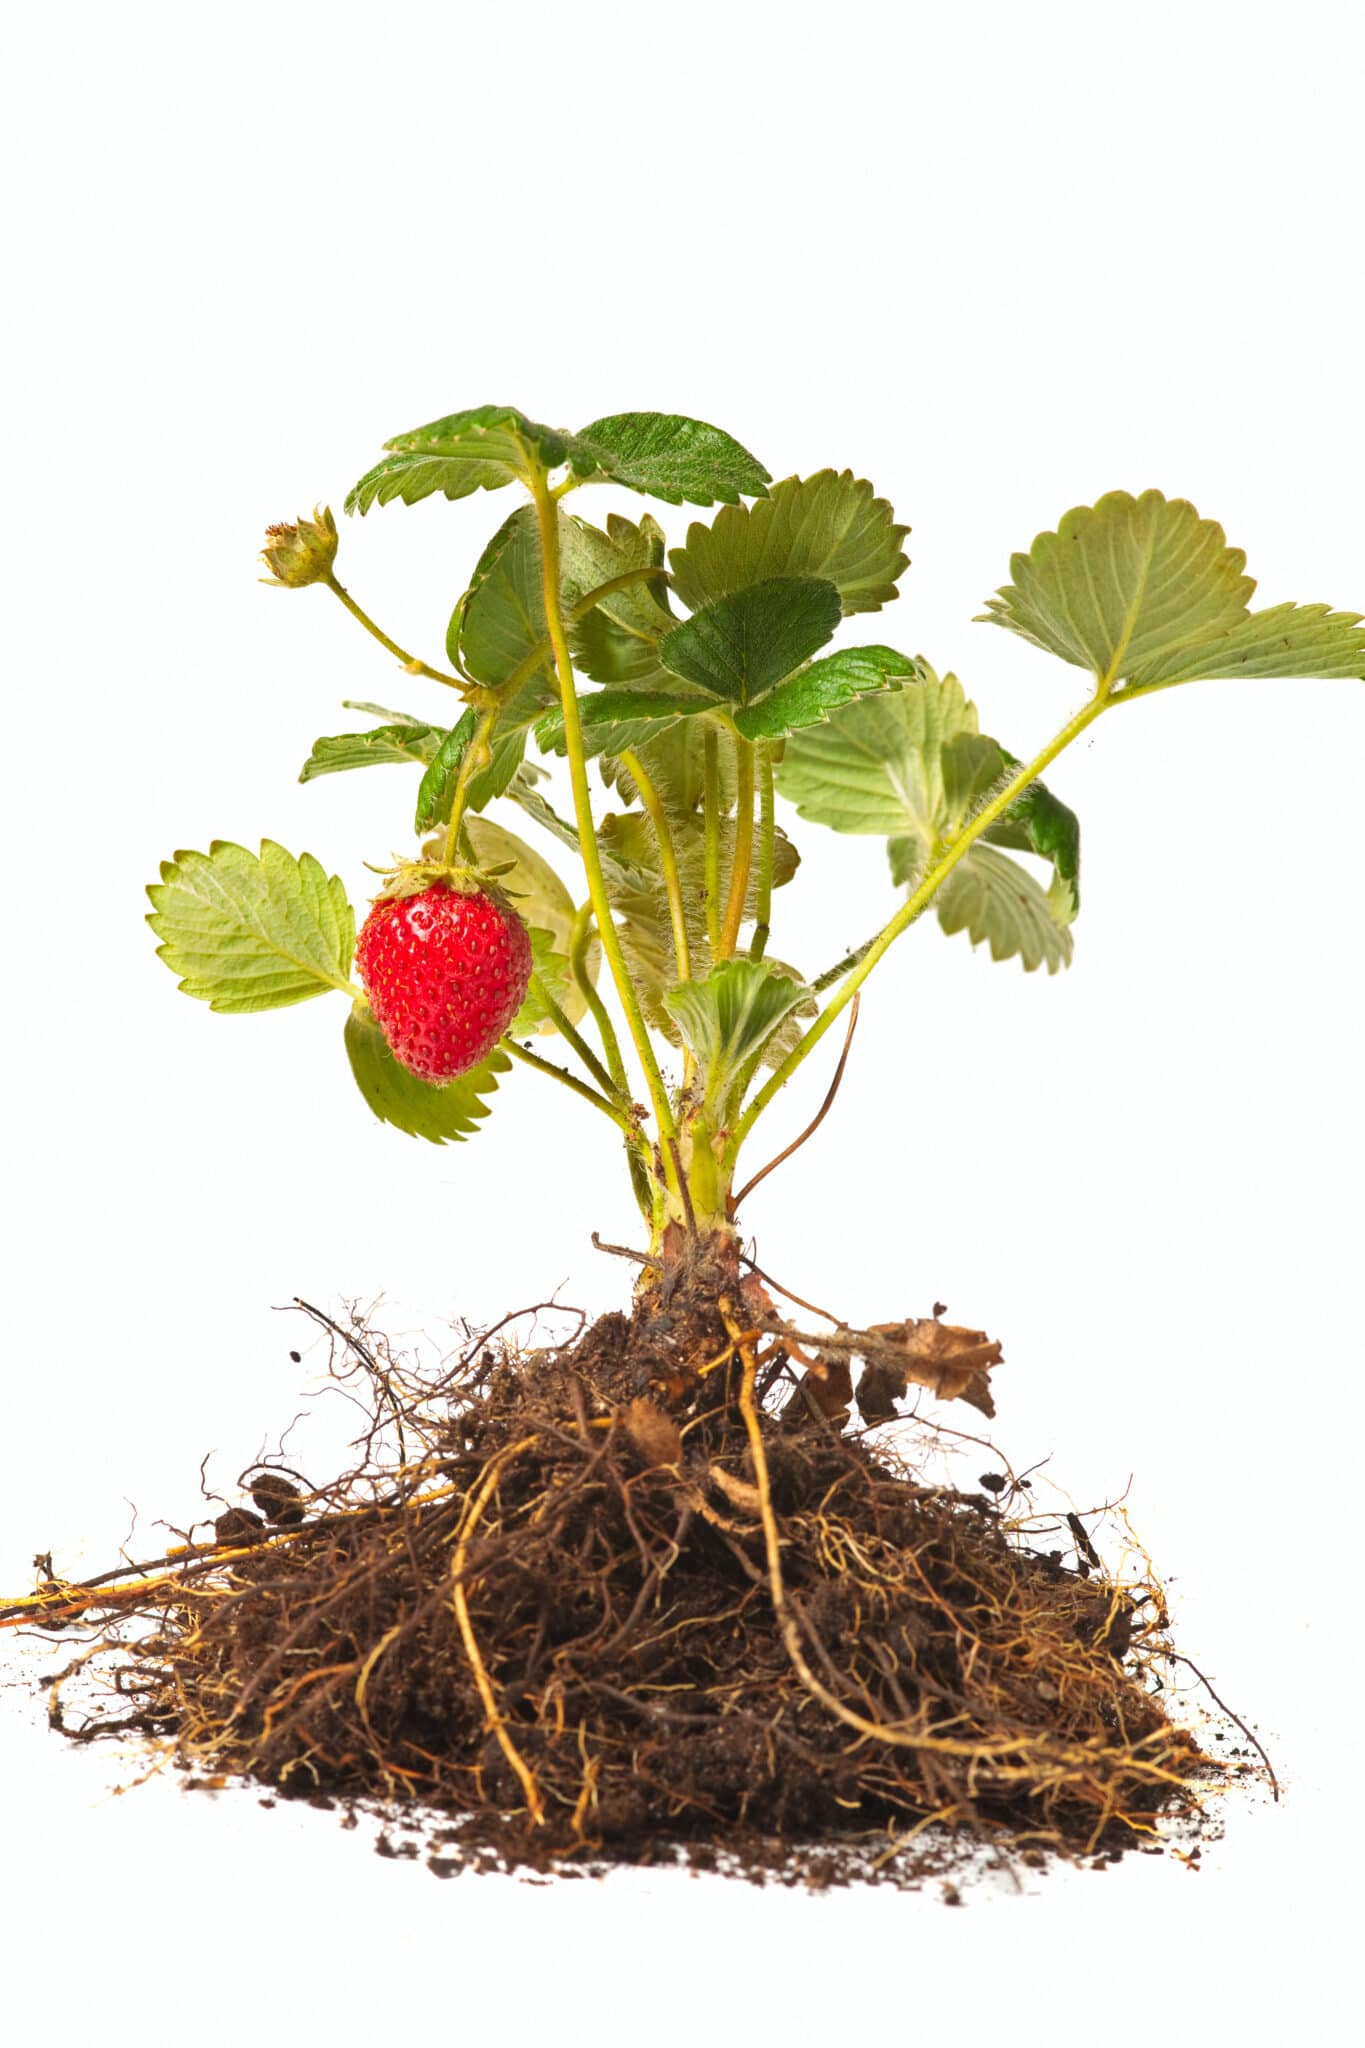 A strawberry plant with roots ready for planting.  The plant has one ripe strawberry.  The iimage is set against a bright white background.